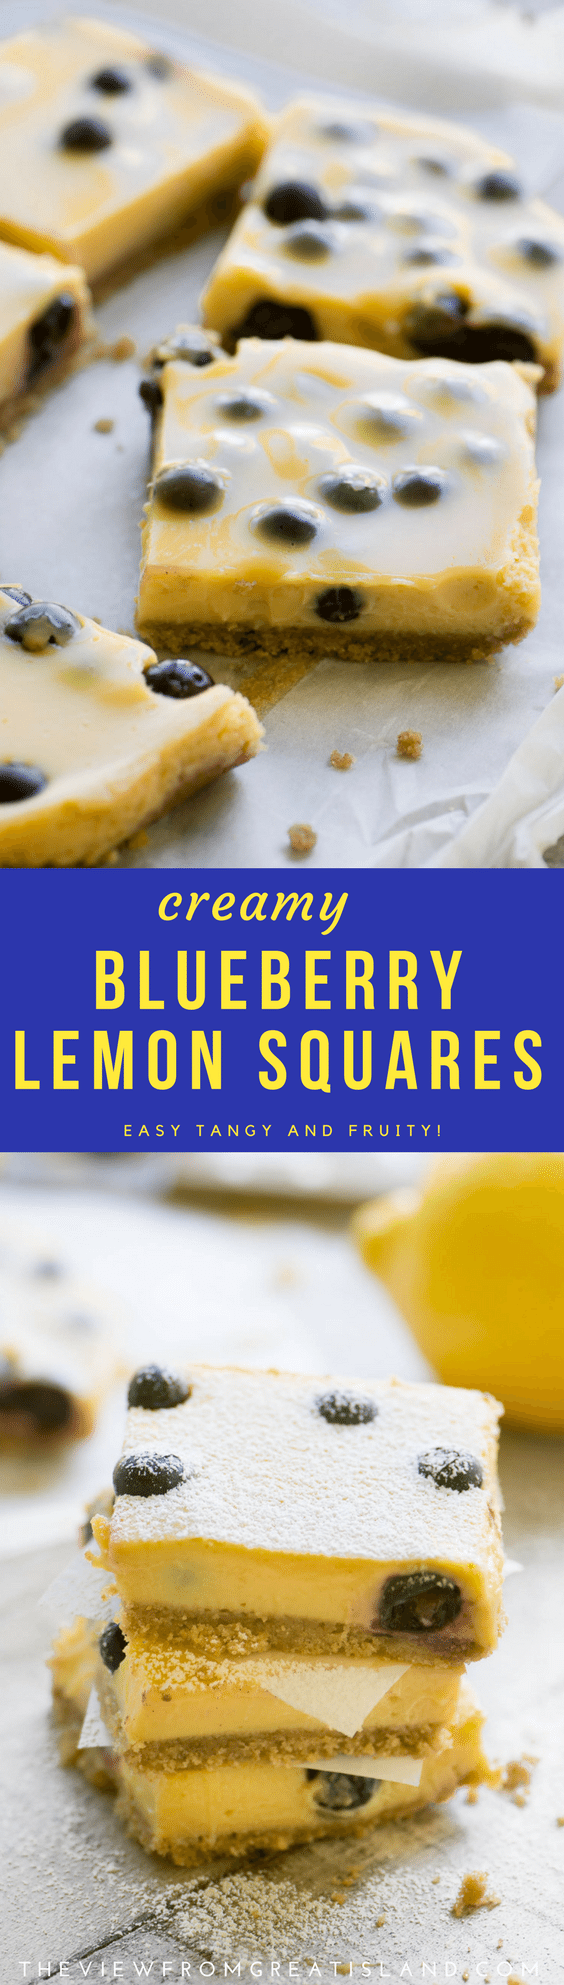 Blueberry Lemon Bars ~ this easy lemon bar recipe is a perfect quick spring and summer dessert ~ serve them chilled right from the fridge! #lemonbar #dessert #lemon #easydessert #blueberries #blueberrylemon #easydessert #lemonsquares #lemoncurd #blueberrydessert